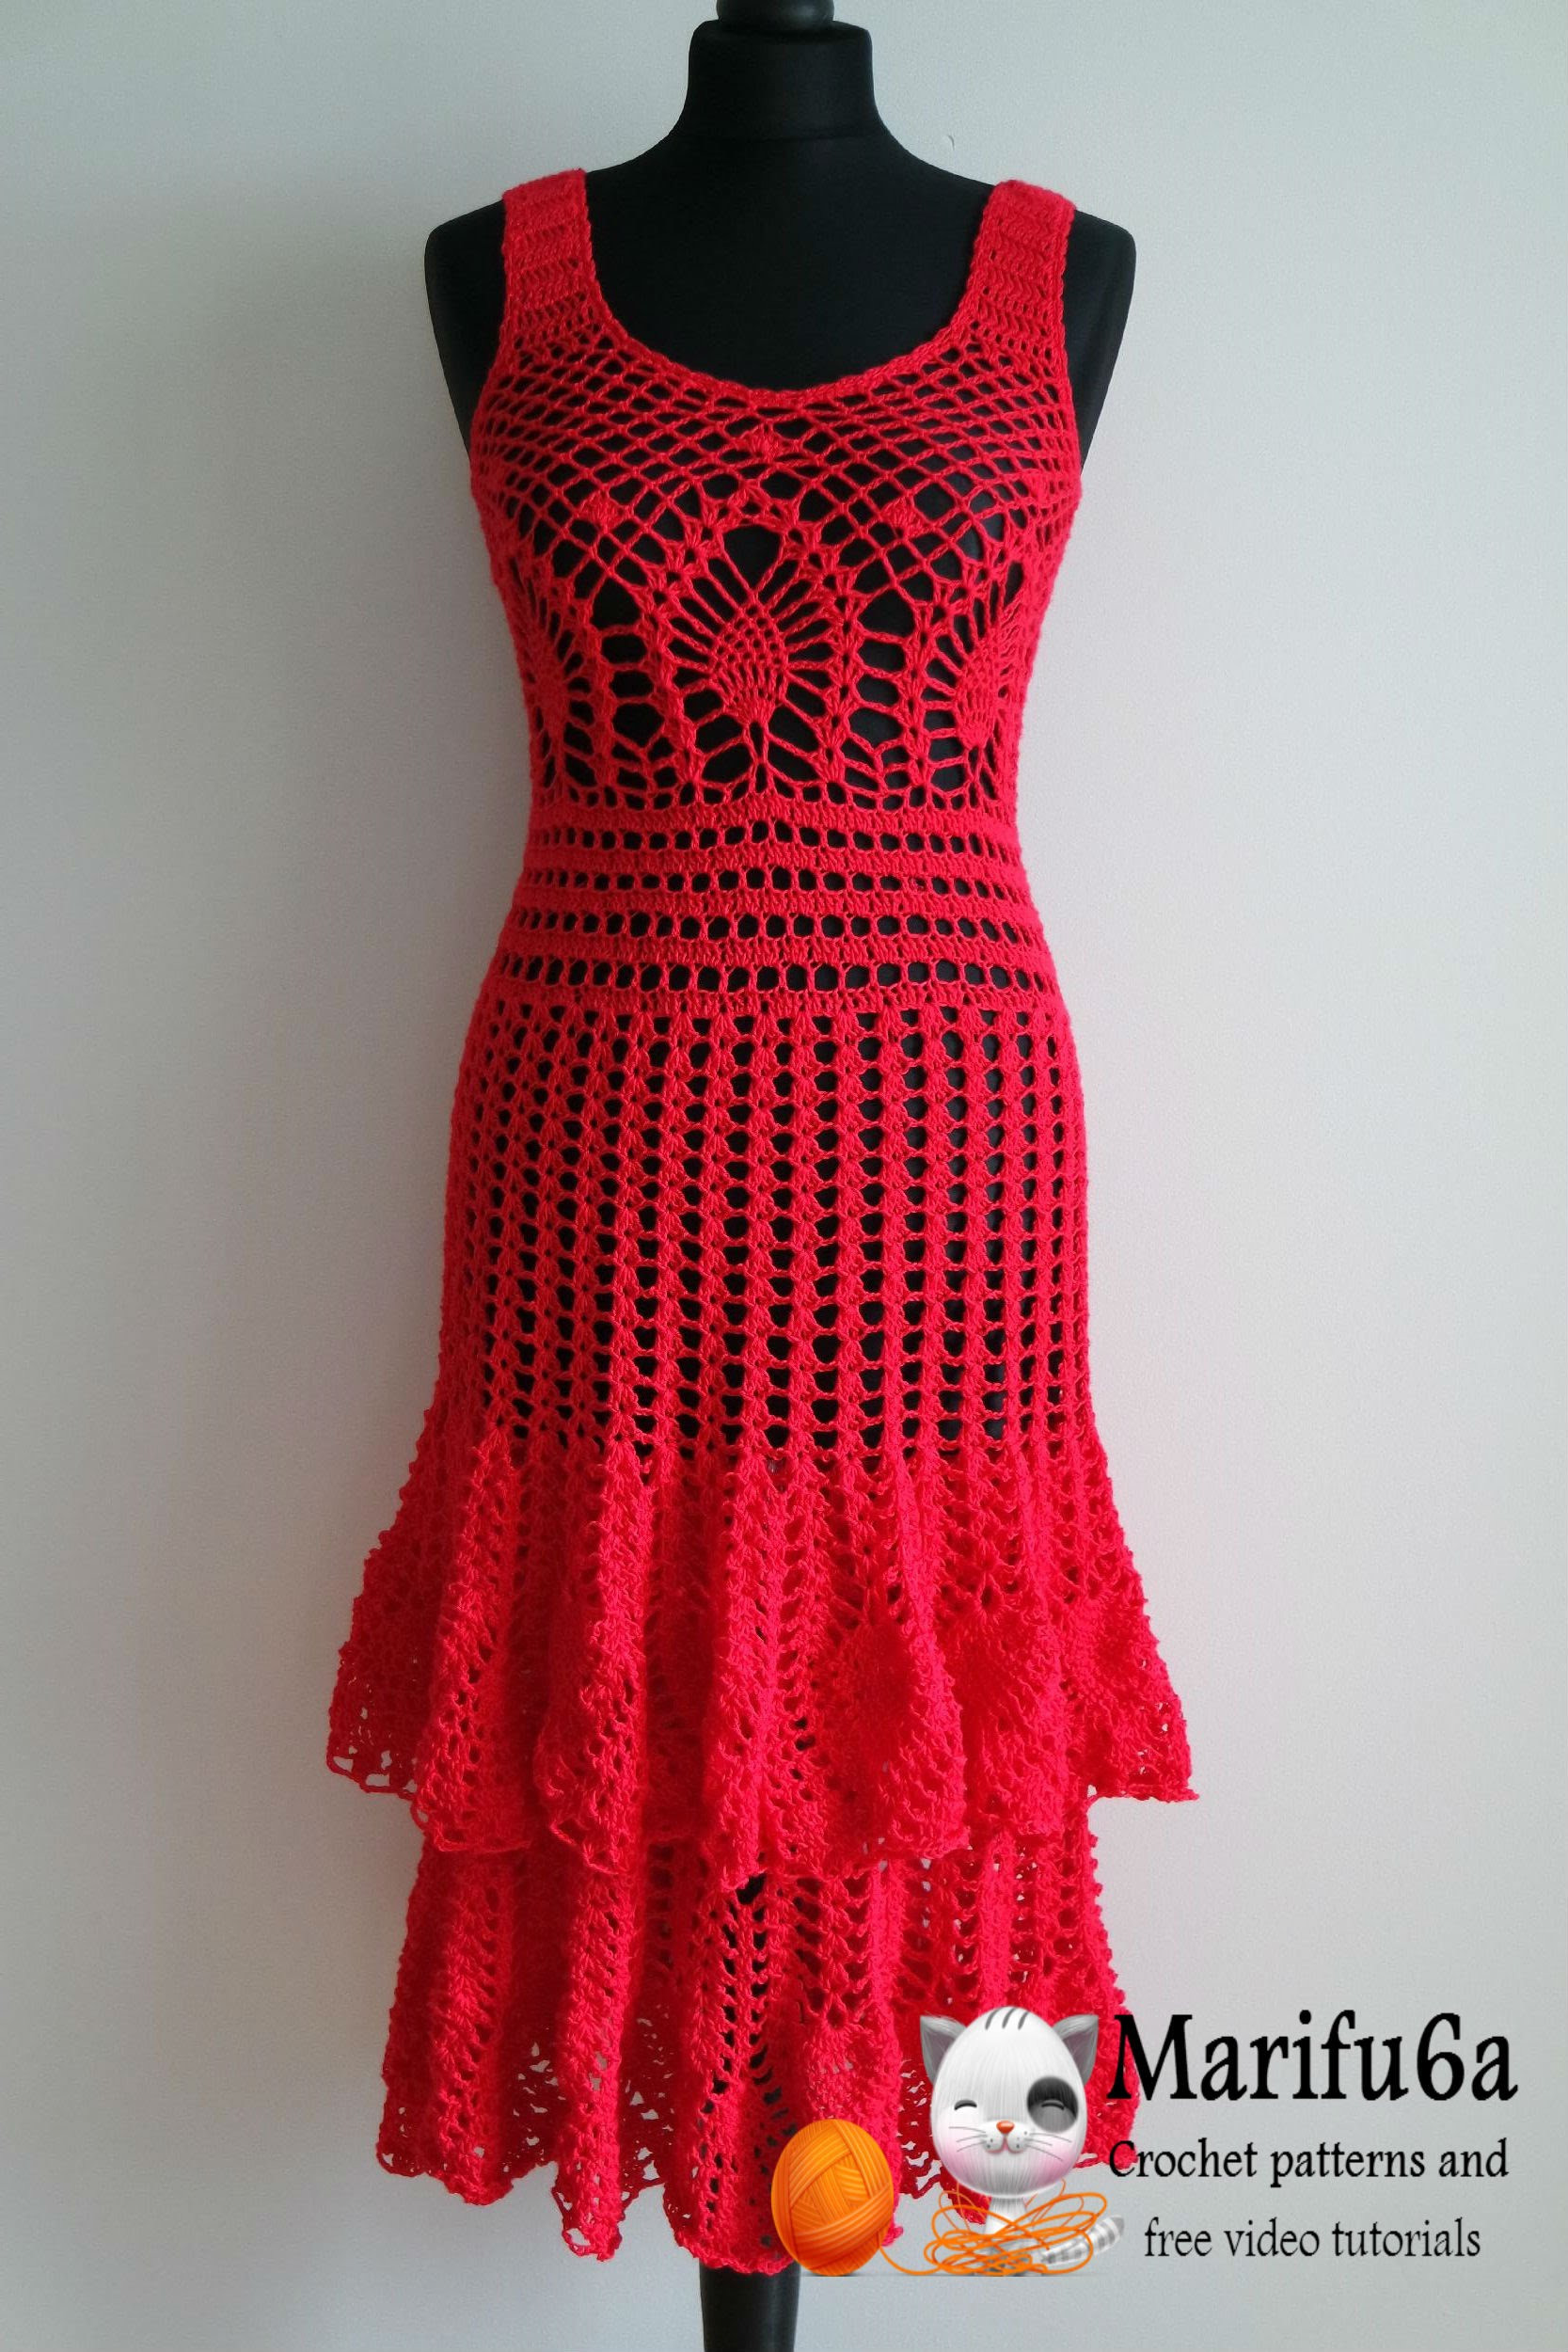 Crochet Clothing Pattern Inspirational Crocheted Dress Patterns Just In Time for Christmas Of Delightful 41 Pics Crochet Clothing Pattern